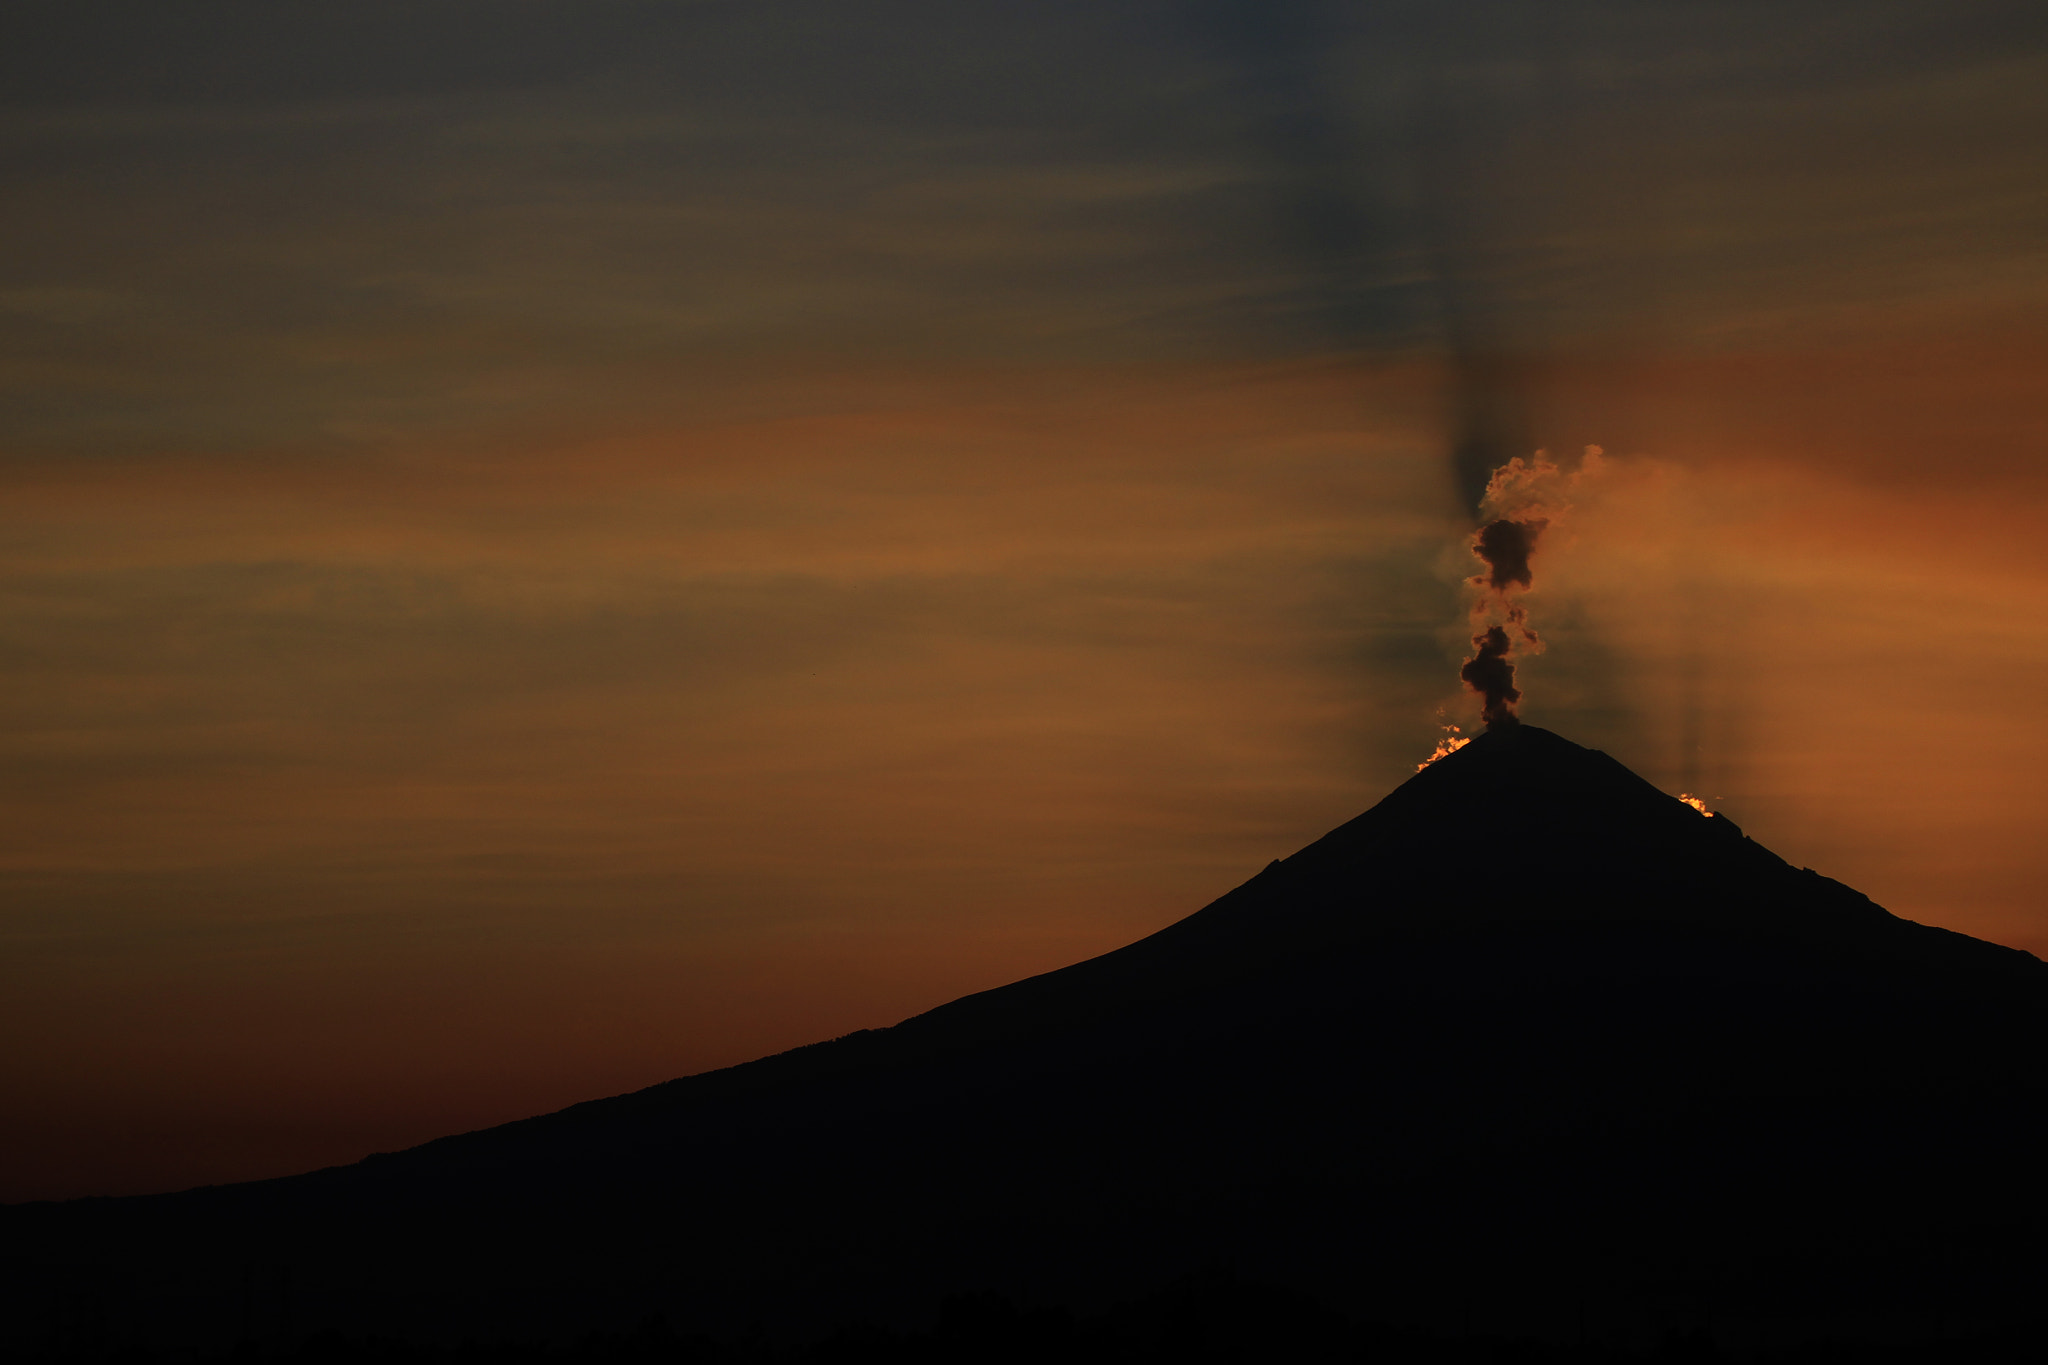 Photograph Sunset and Volcano by Cristobal Garciaferro Rubio on 500px